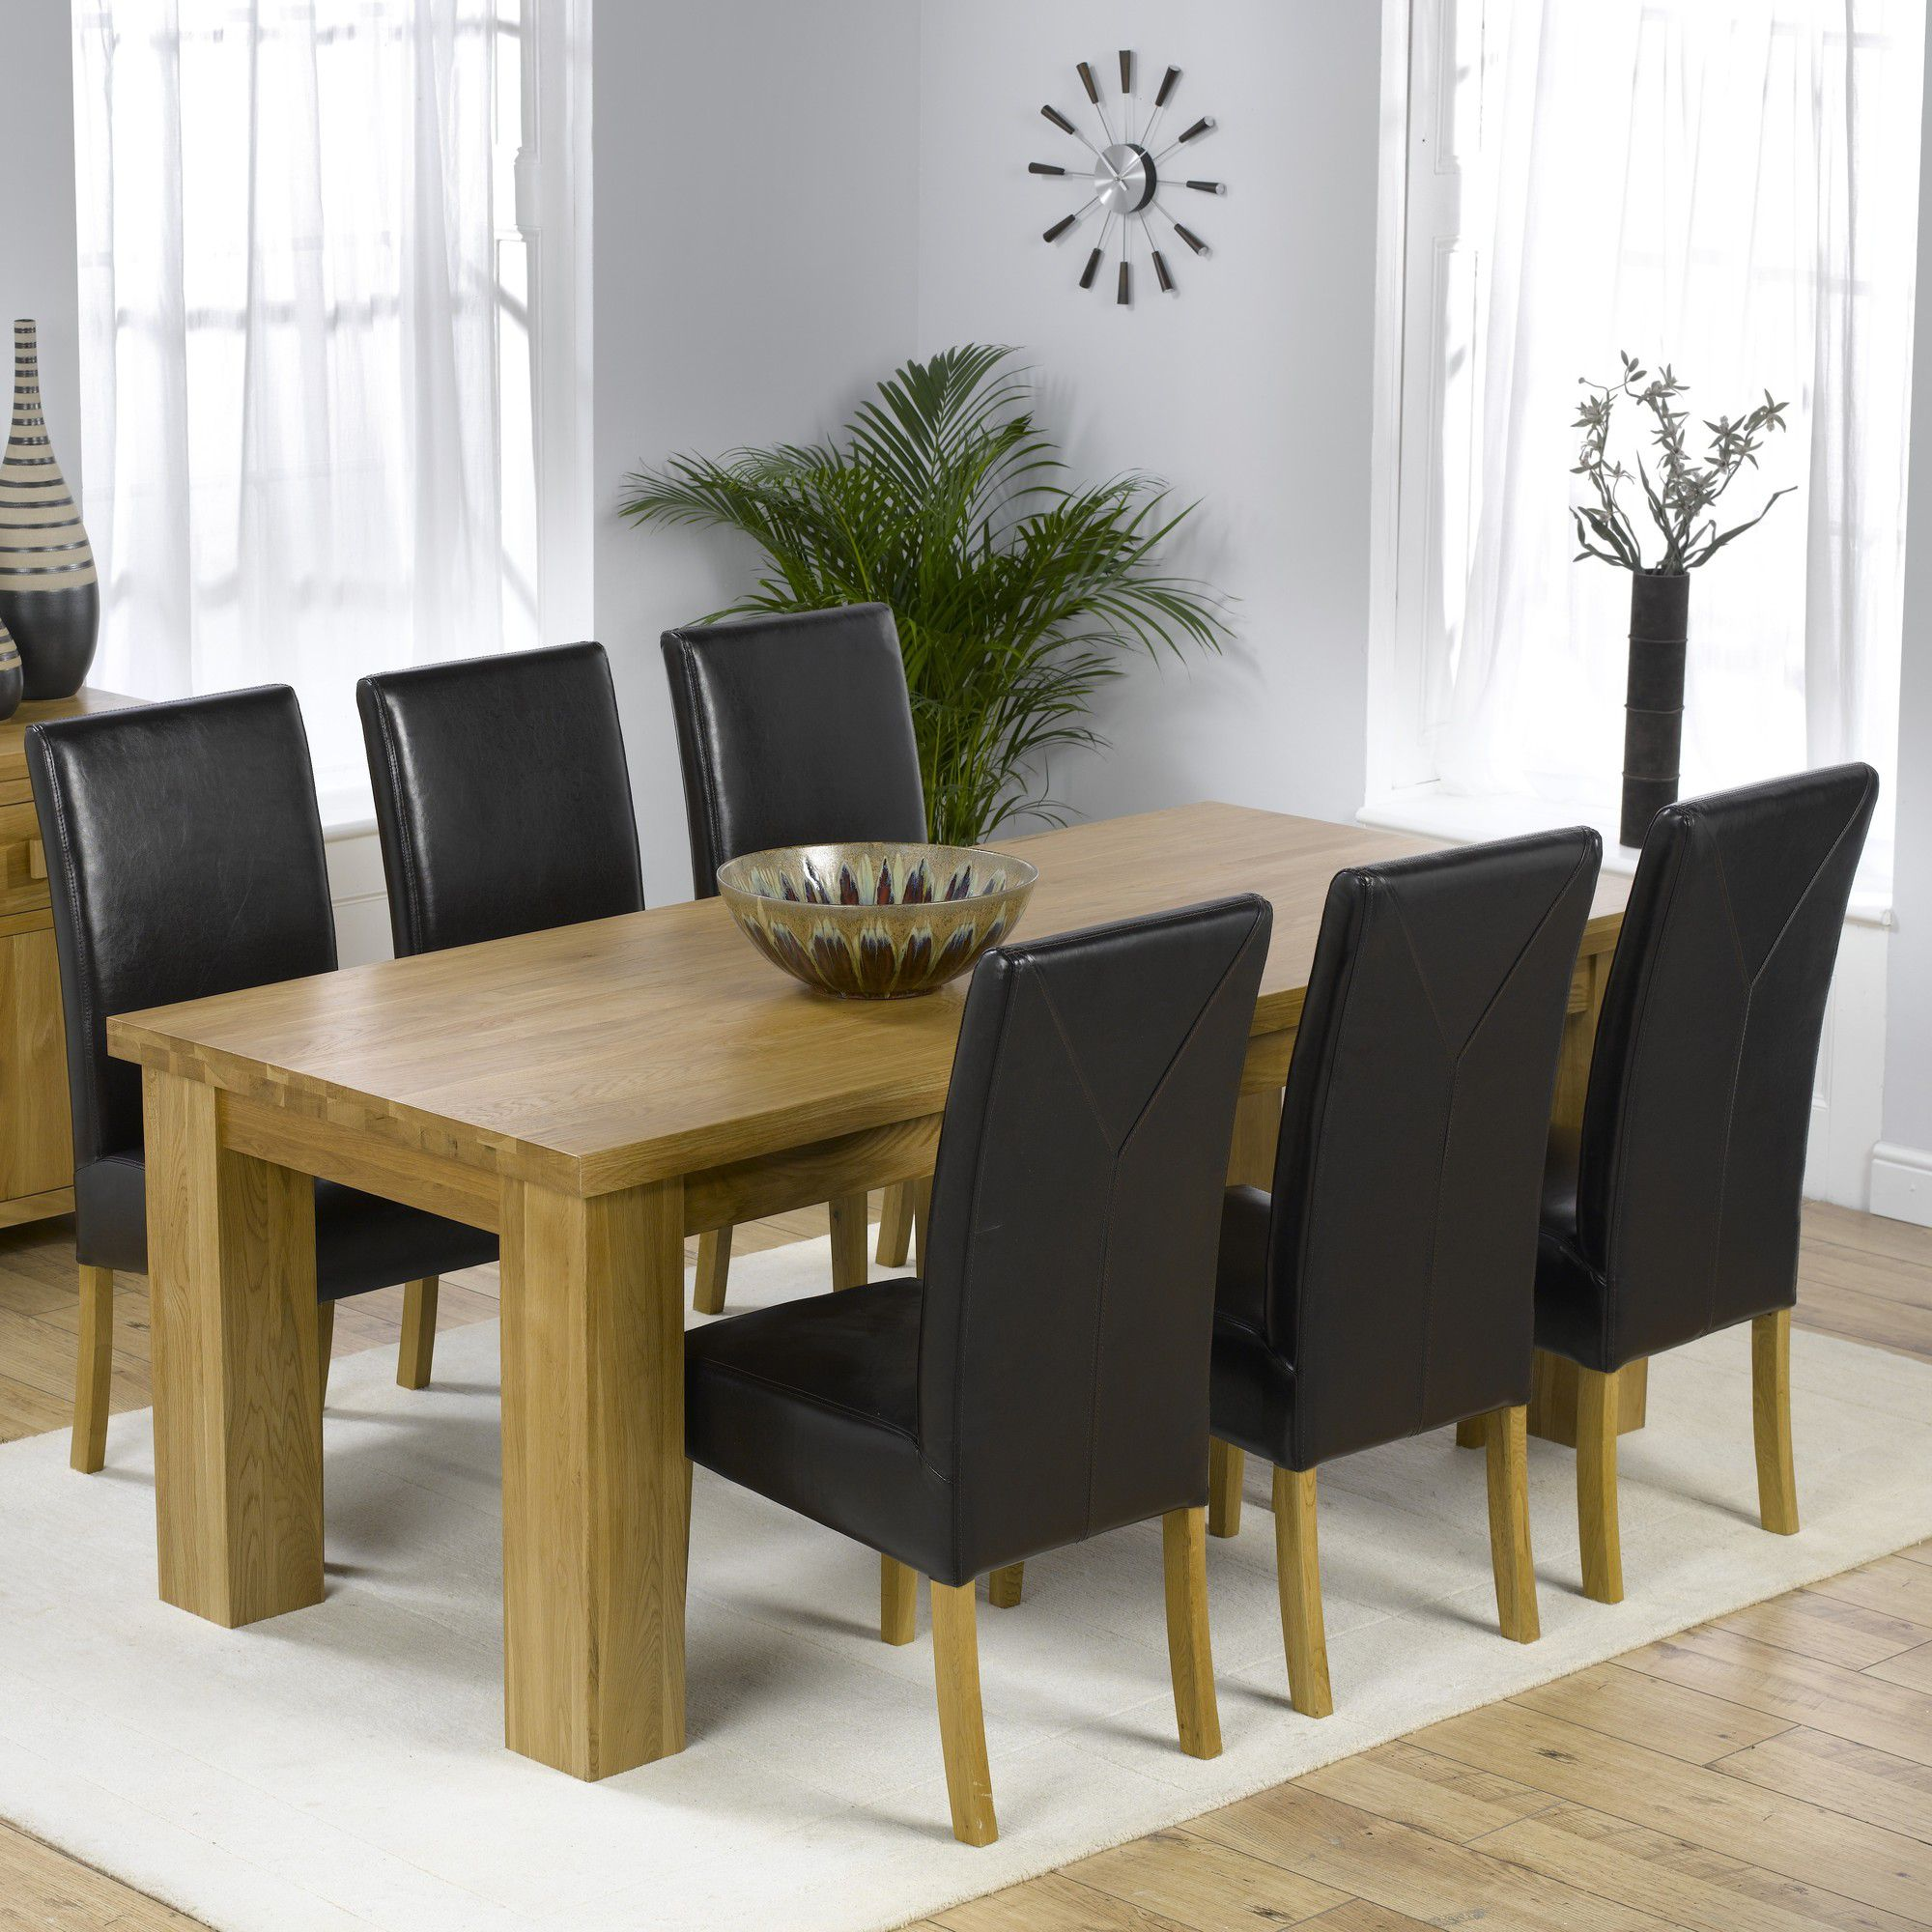 Mark Harris Furniture Barcelona Solid Oak Dining Table with Rustique Chairs